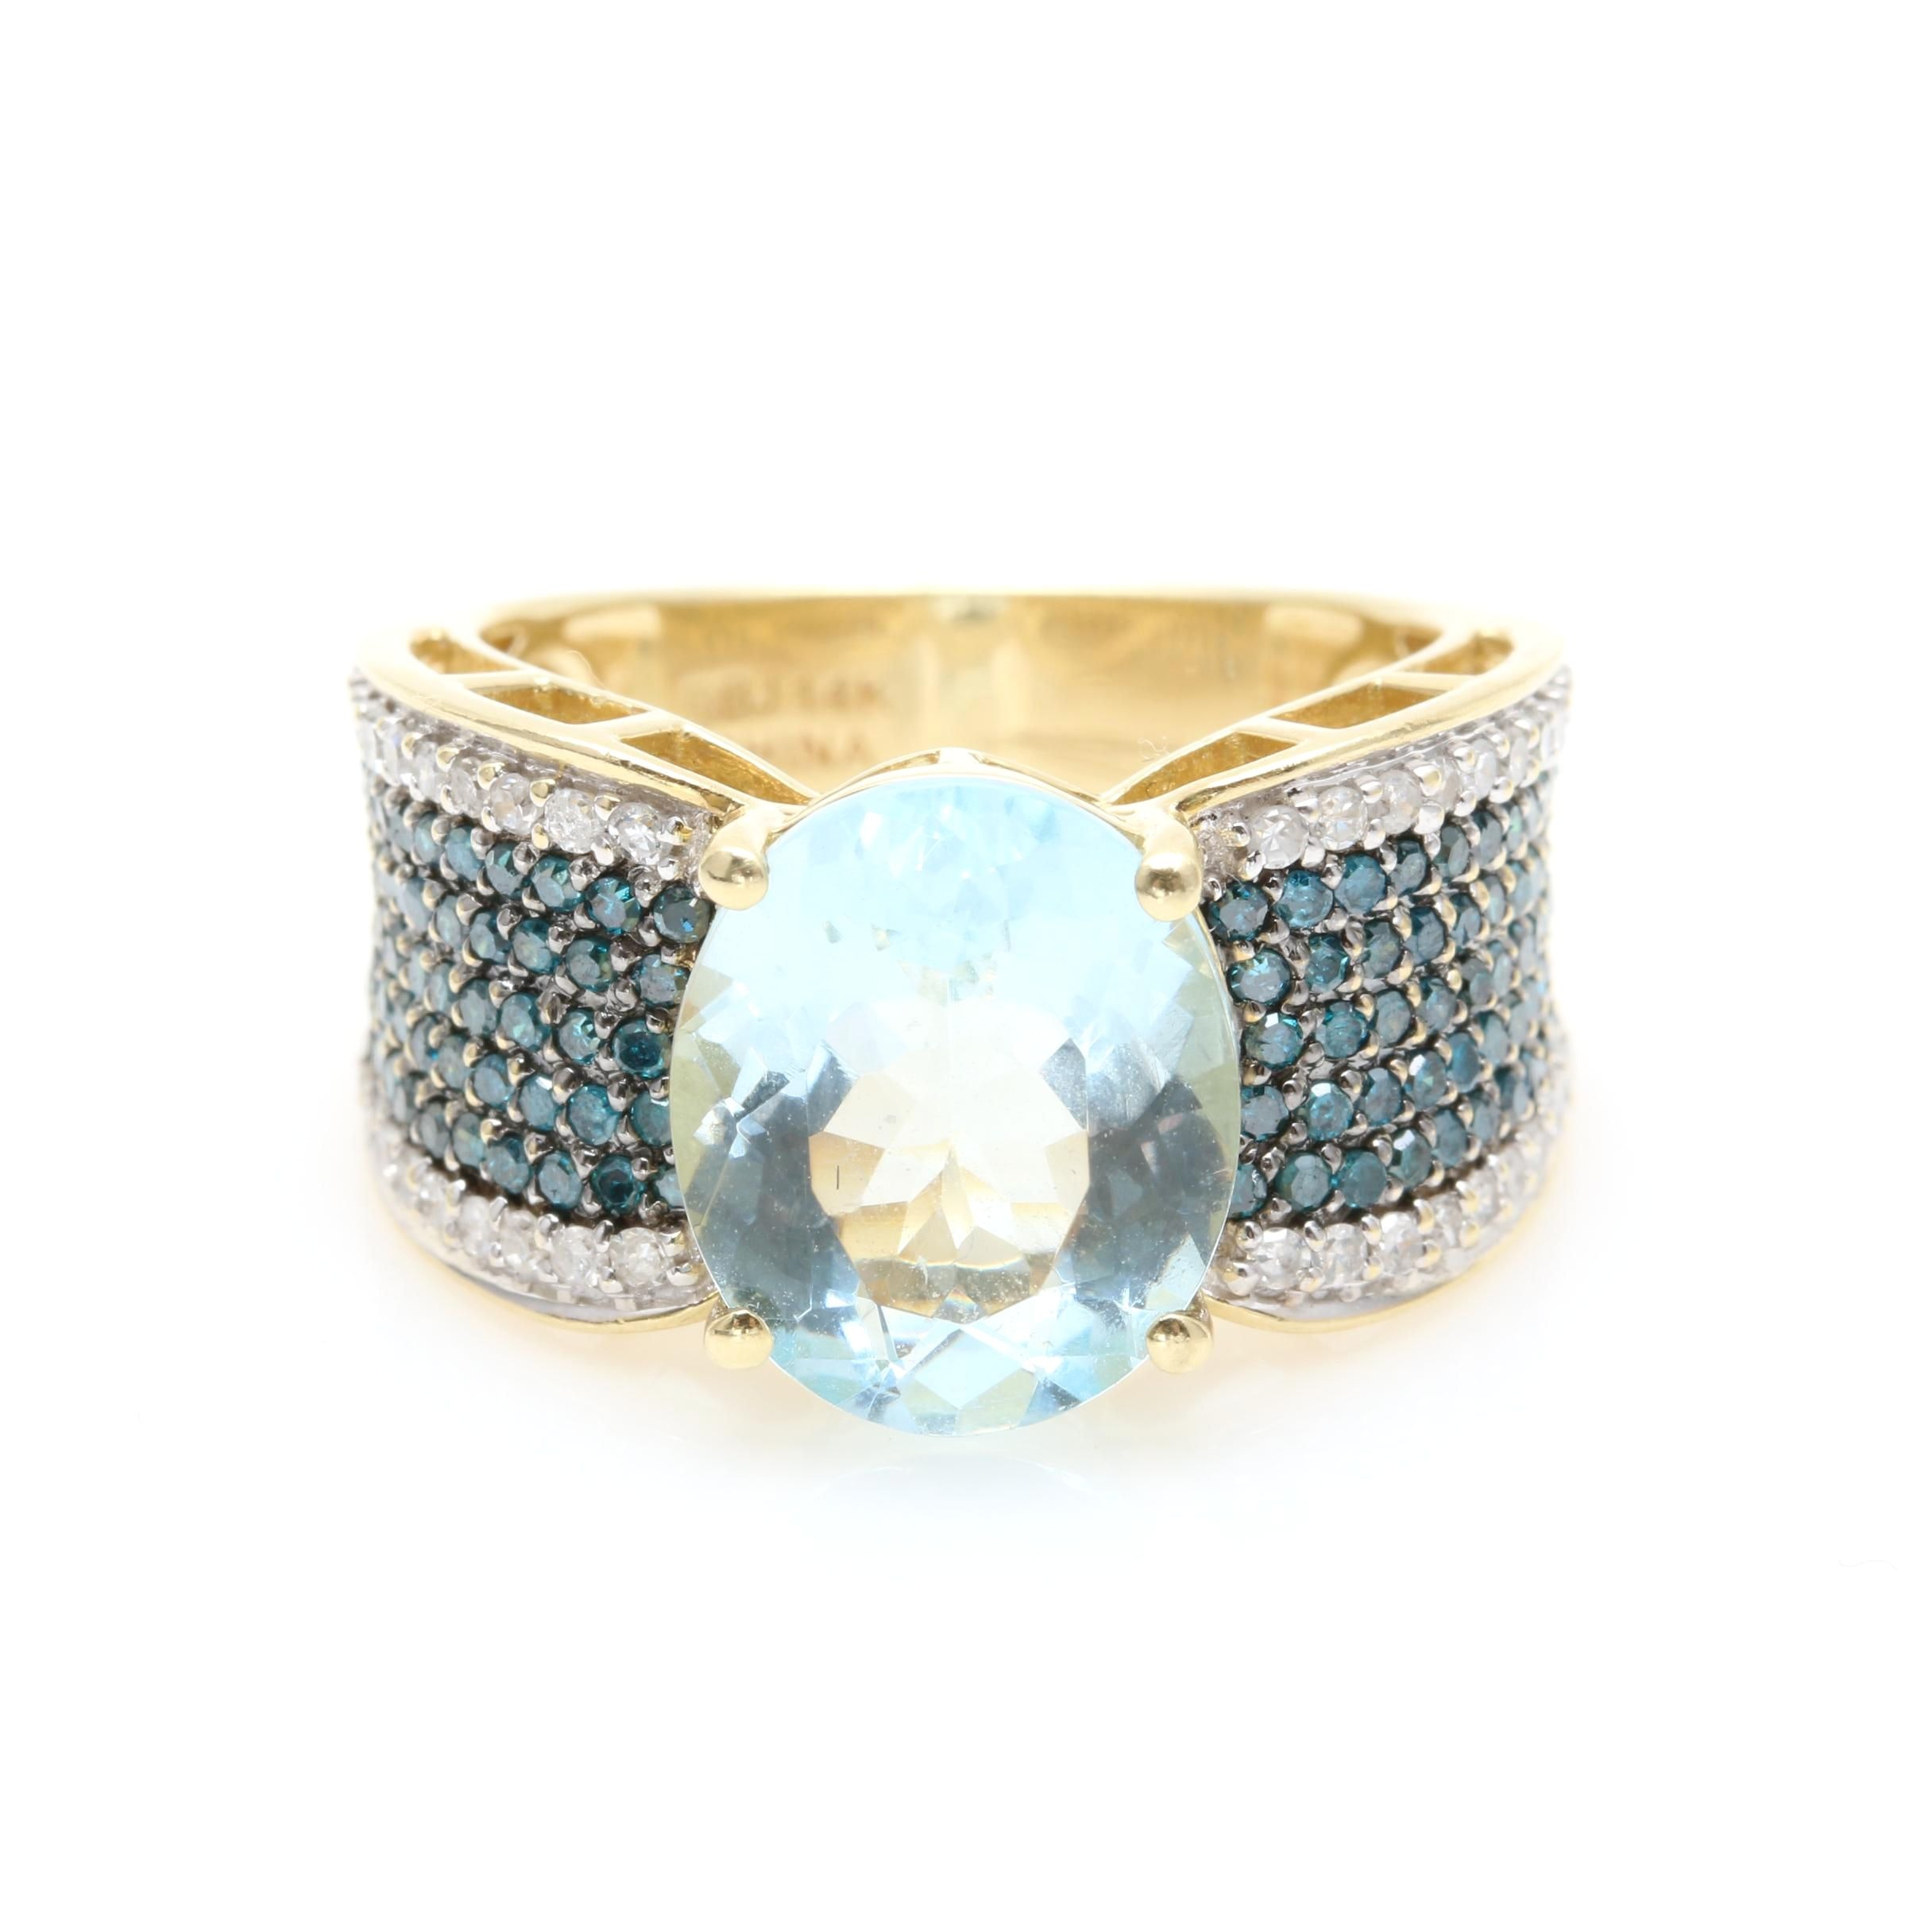 14K Yellow Gold 3.88 CT Aquamarine and 1.03 CTW Diamond Ring